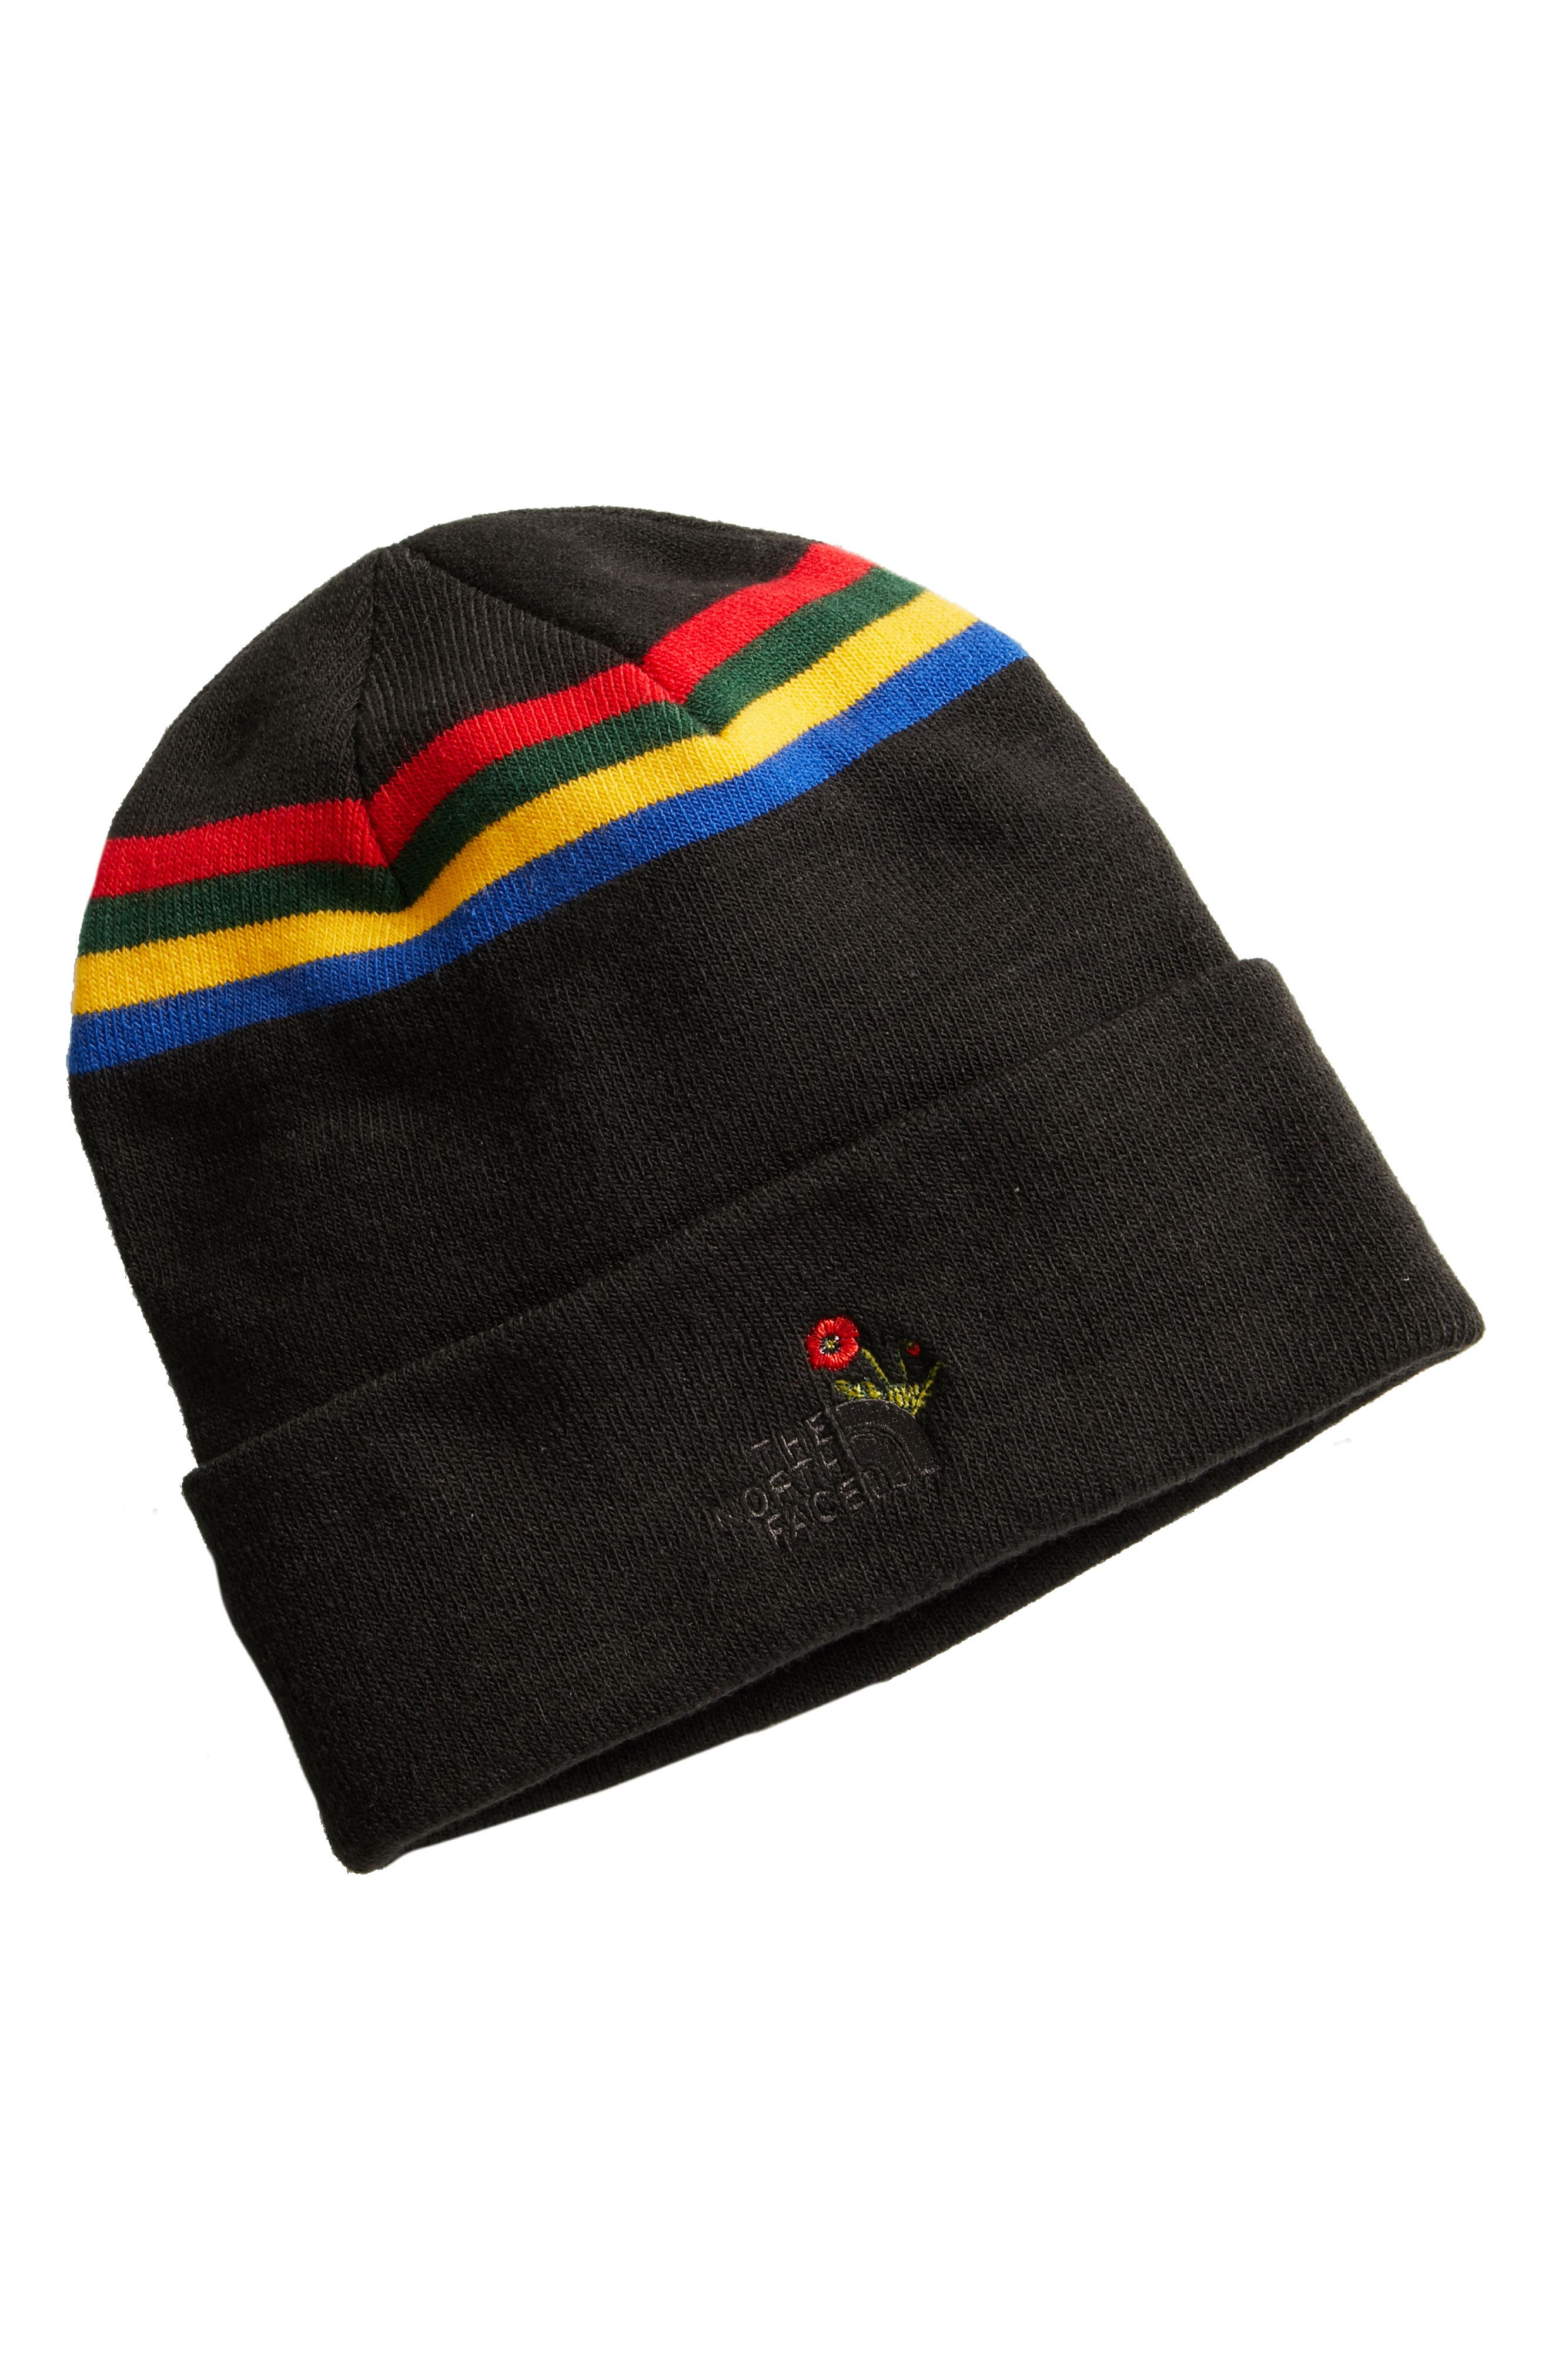 Poppy Dock Workers Beanie,                         Main,                         color, 001